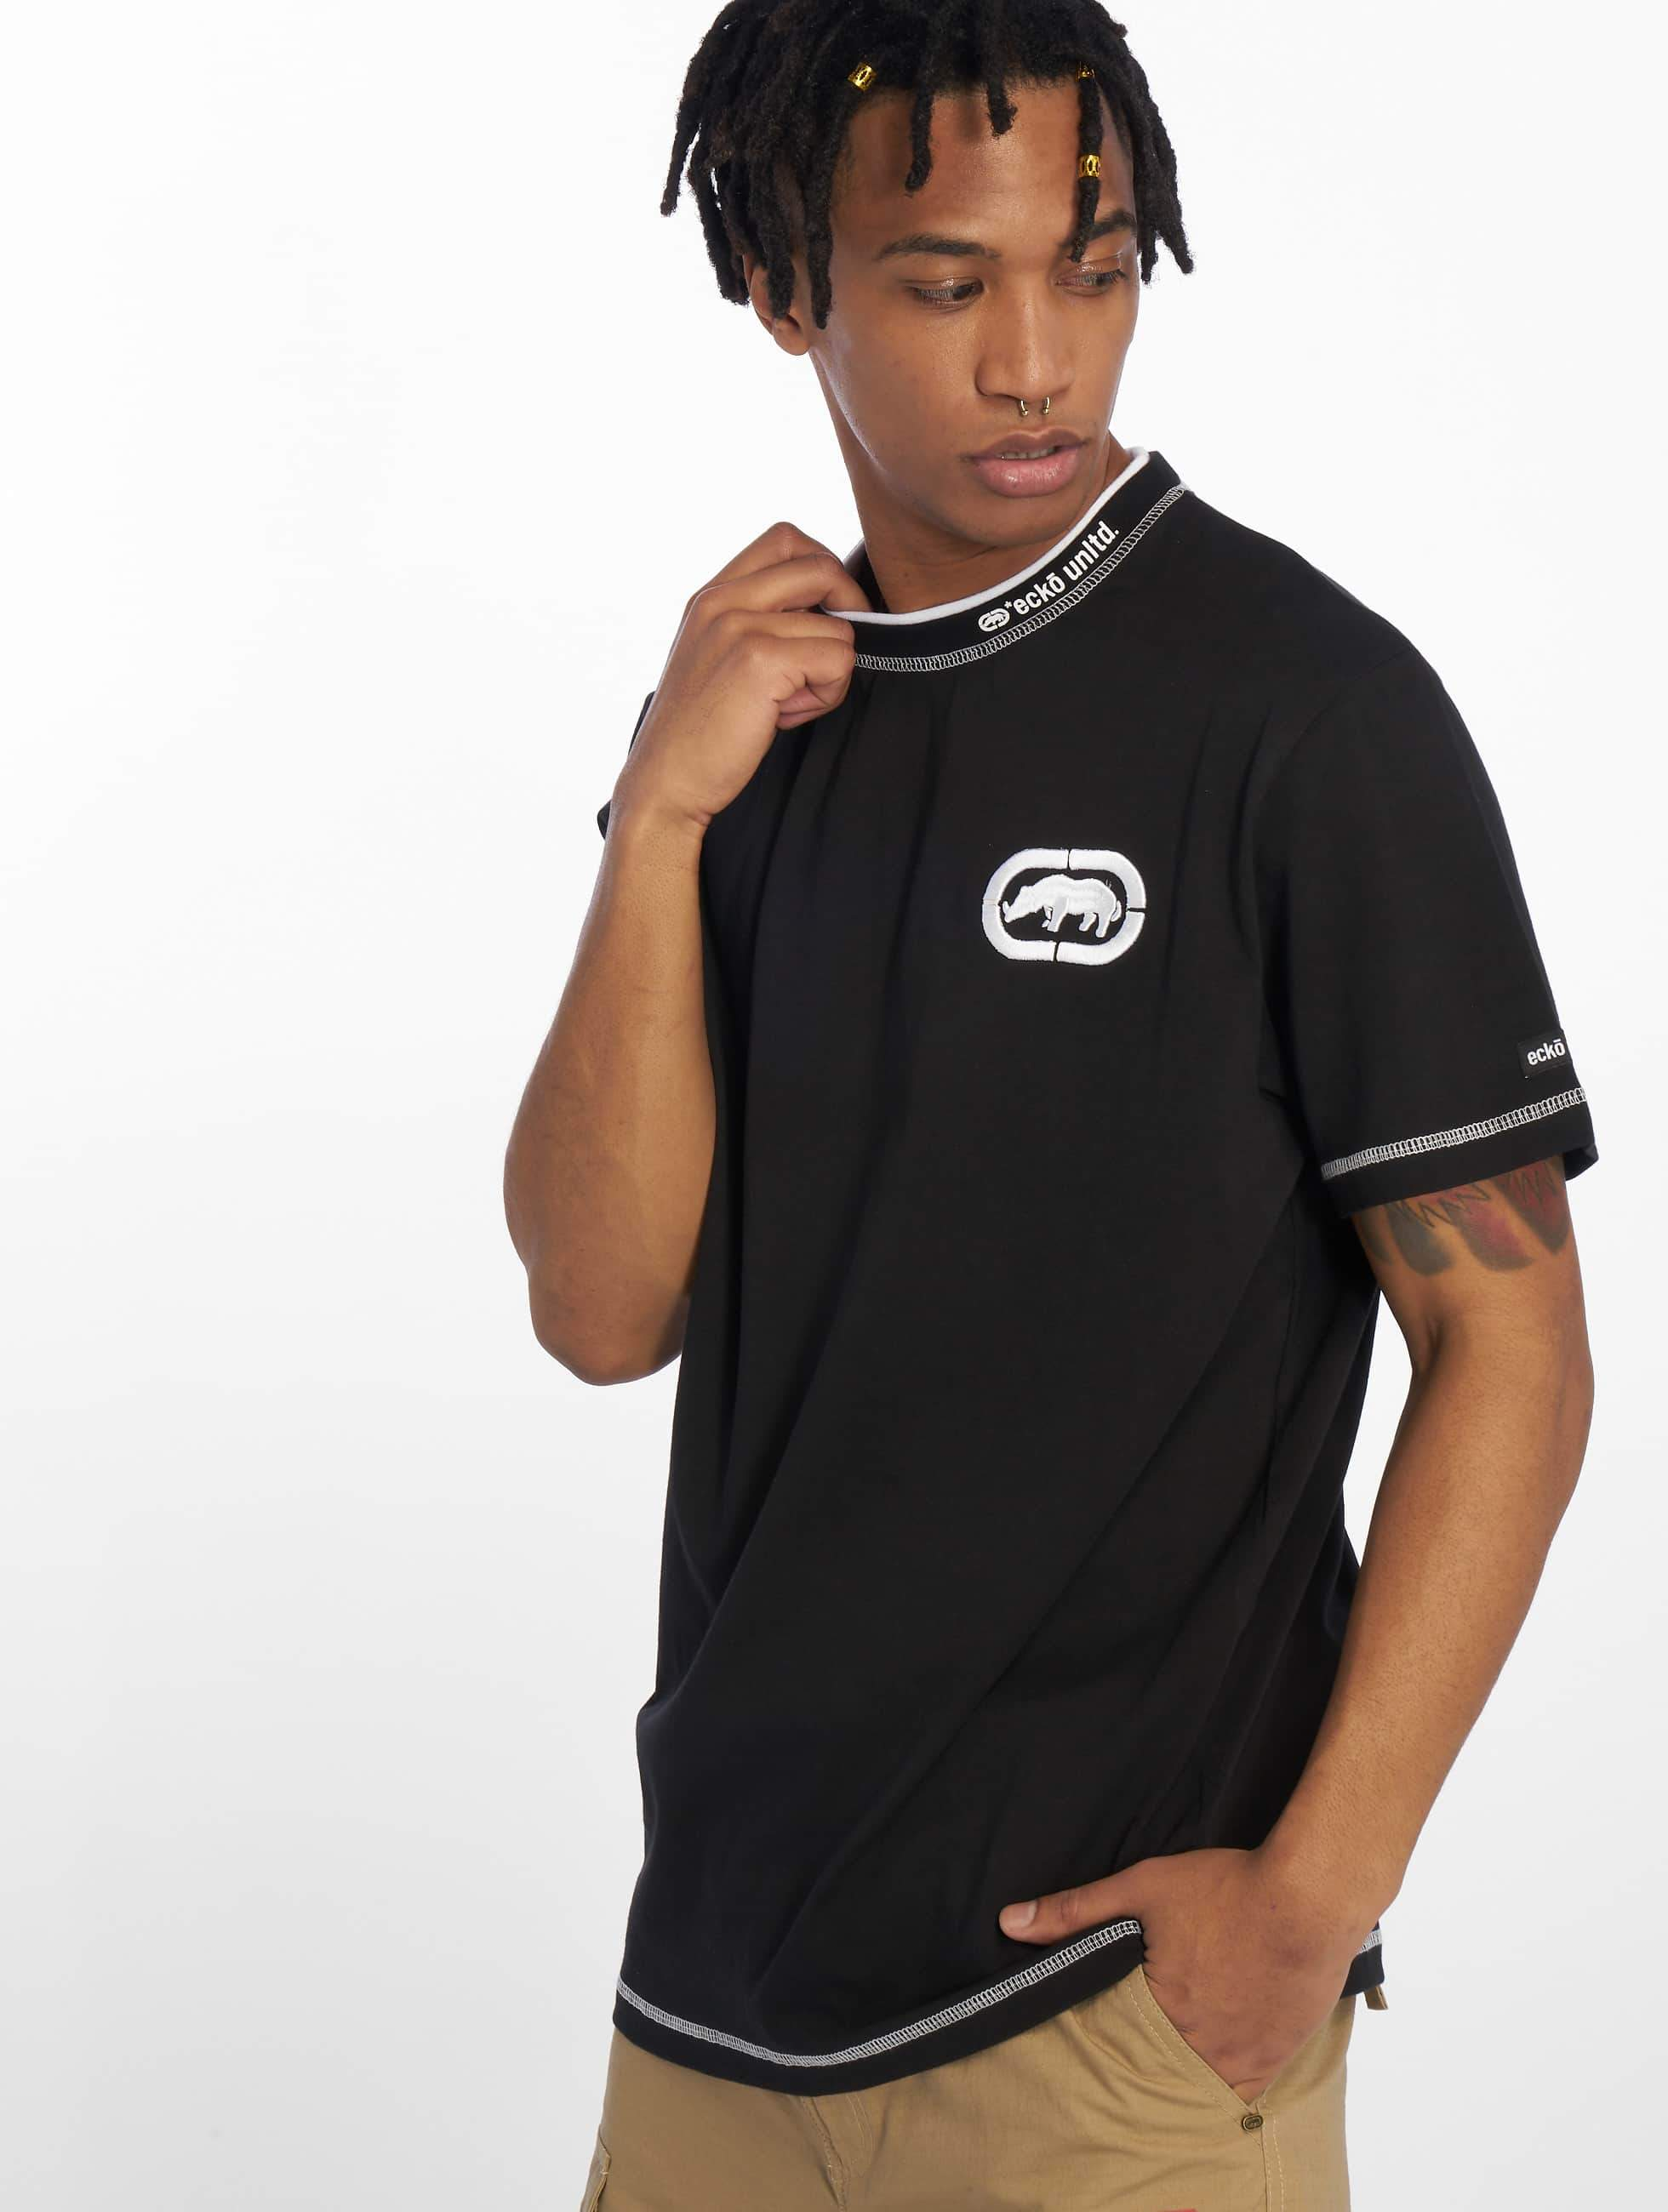 Ecko Unltd. / T-Shirt Far Rockaway in black 2XL